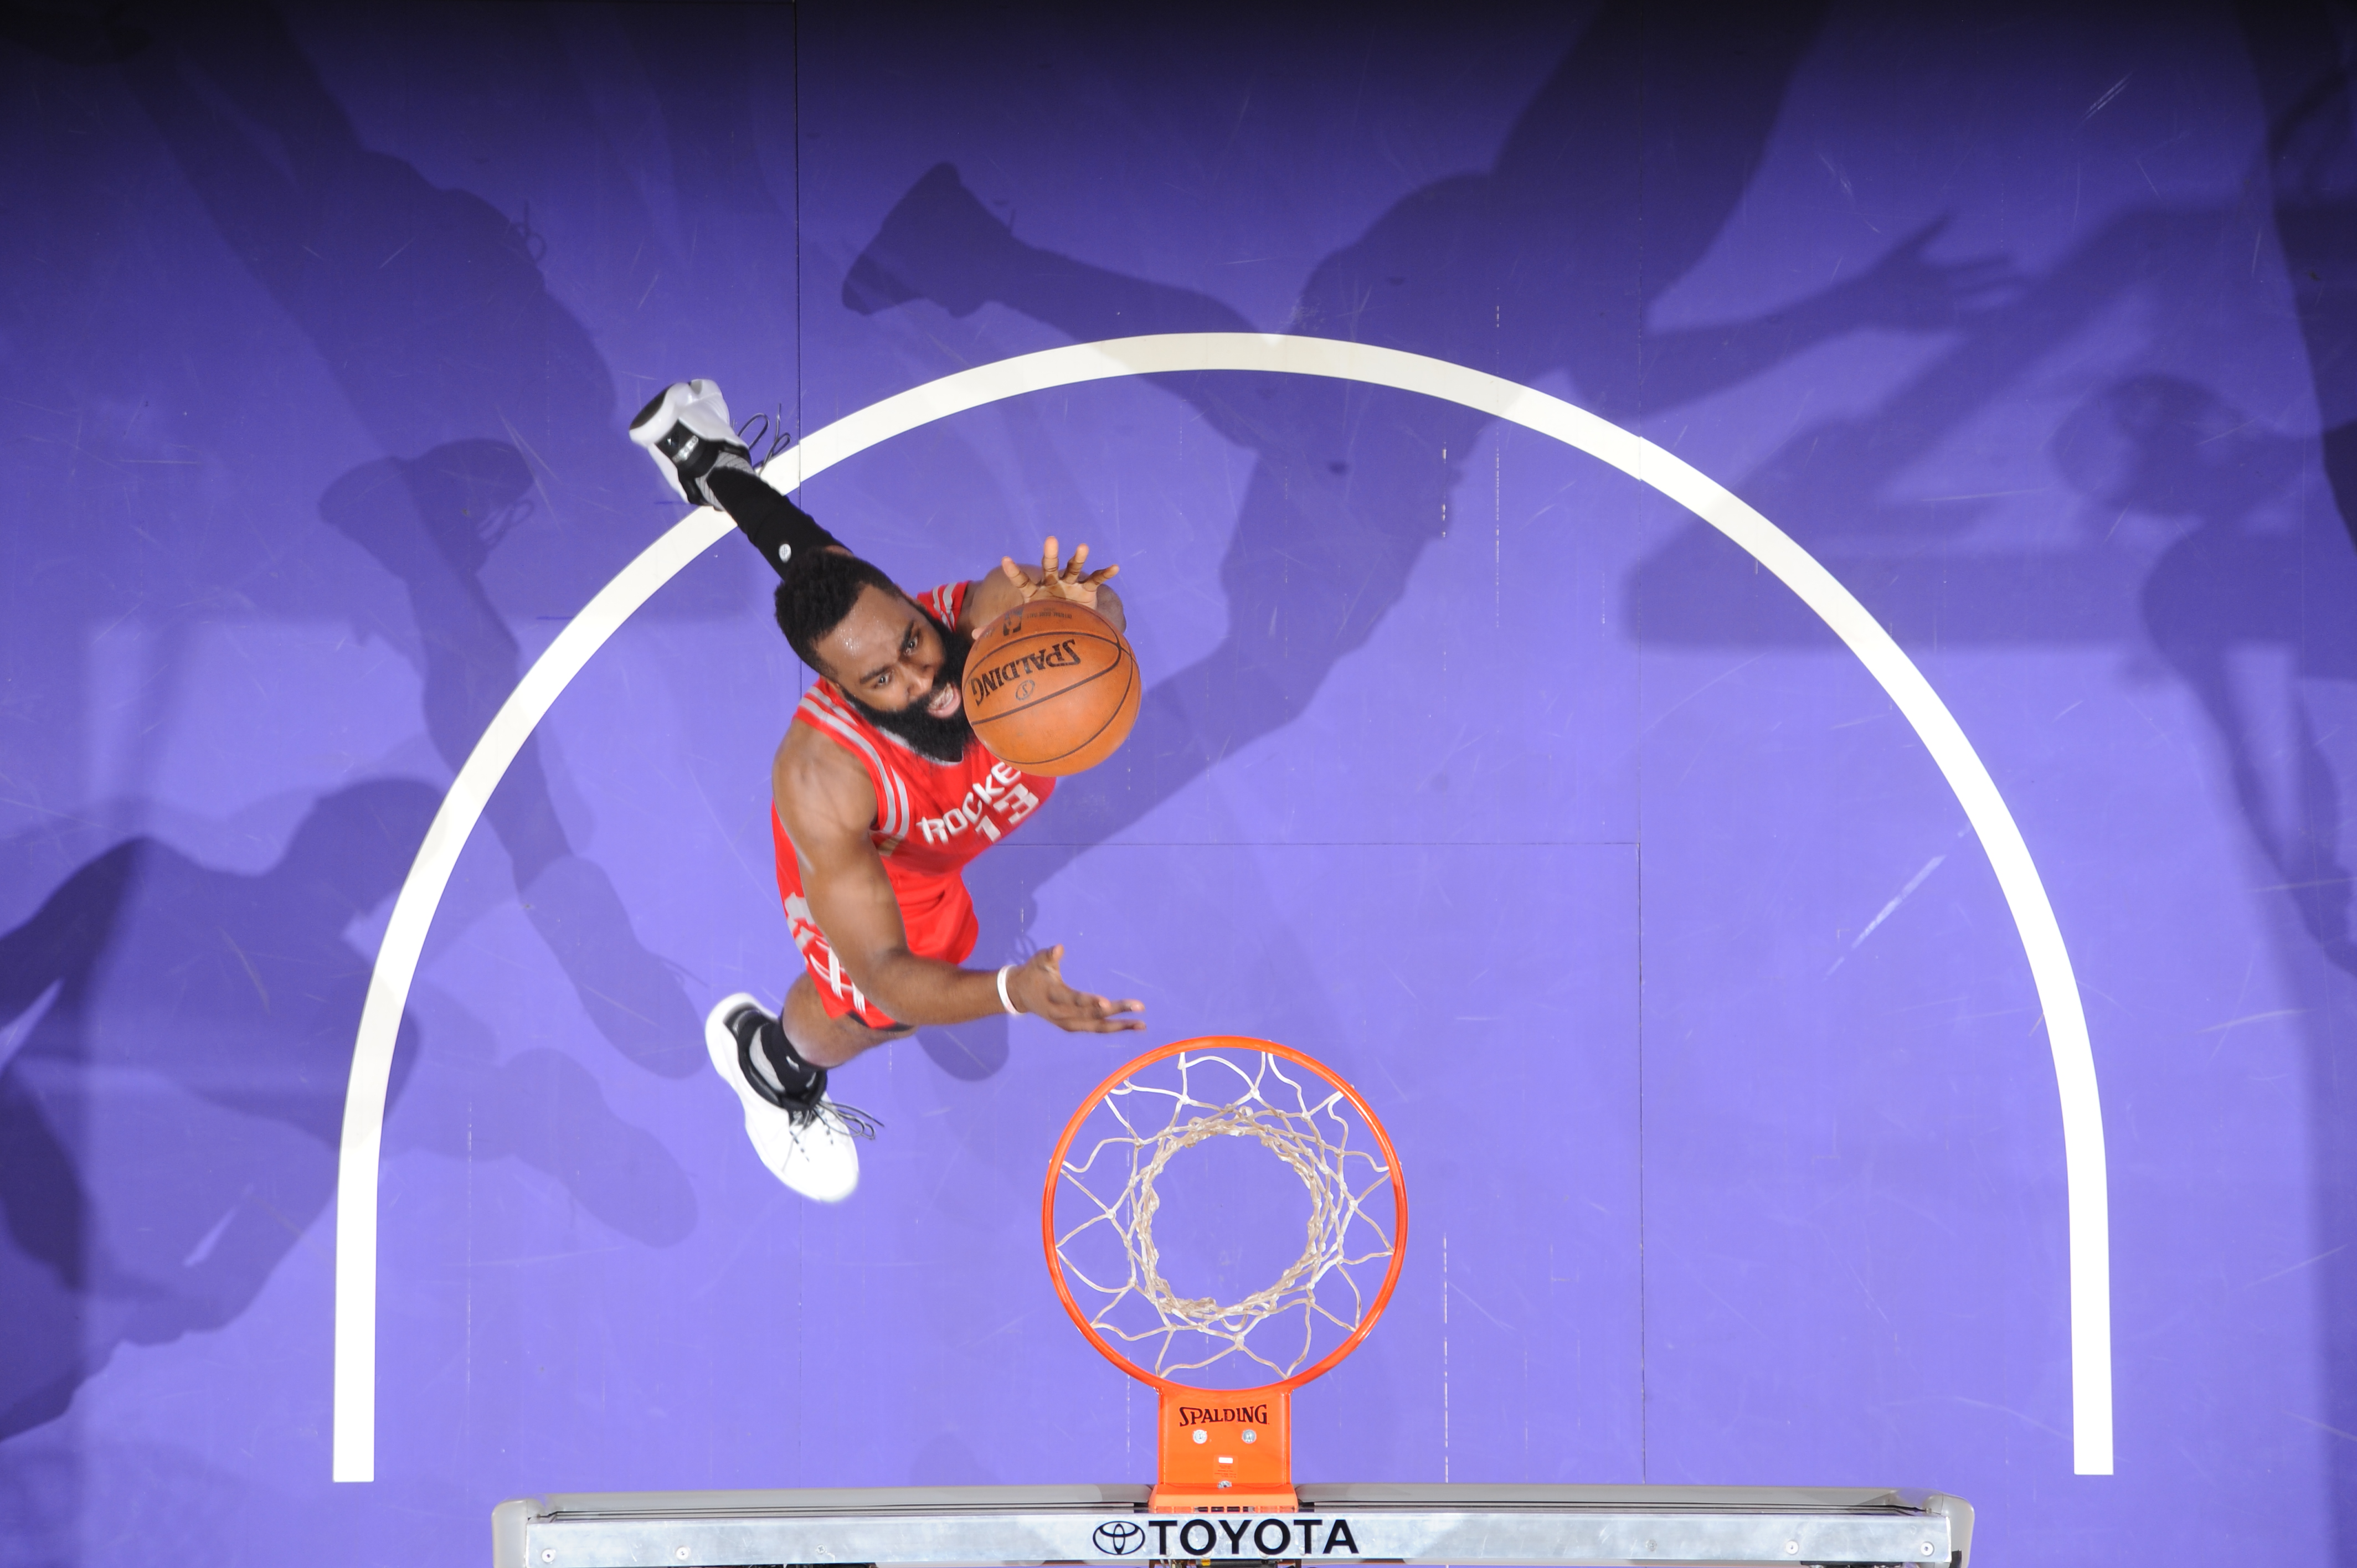 LOS ANGELES, CA - JANUARY 17:  James Harden #13 of the Houston Rockets goes to the basket against the Los Angeles Lakers on January 17, 2016 at STAPLES Center in Los Angeles, California. (Photo by Andrew D. Bernstein/NBAE via Getty Images)